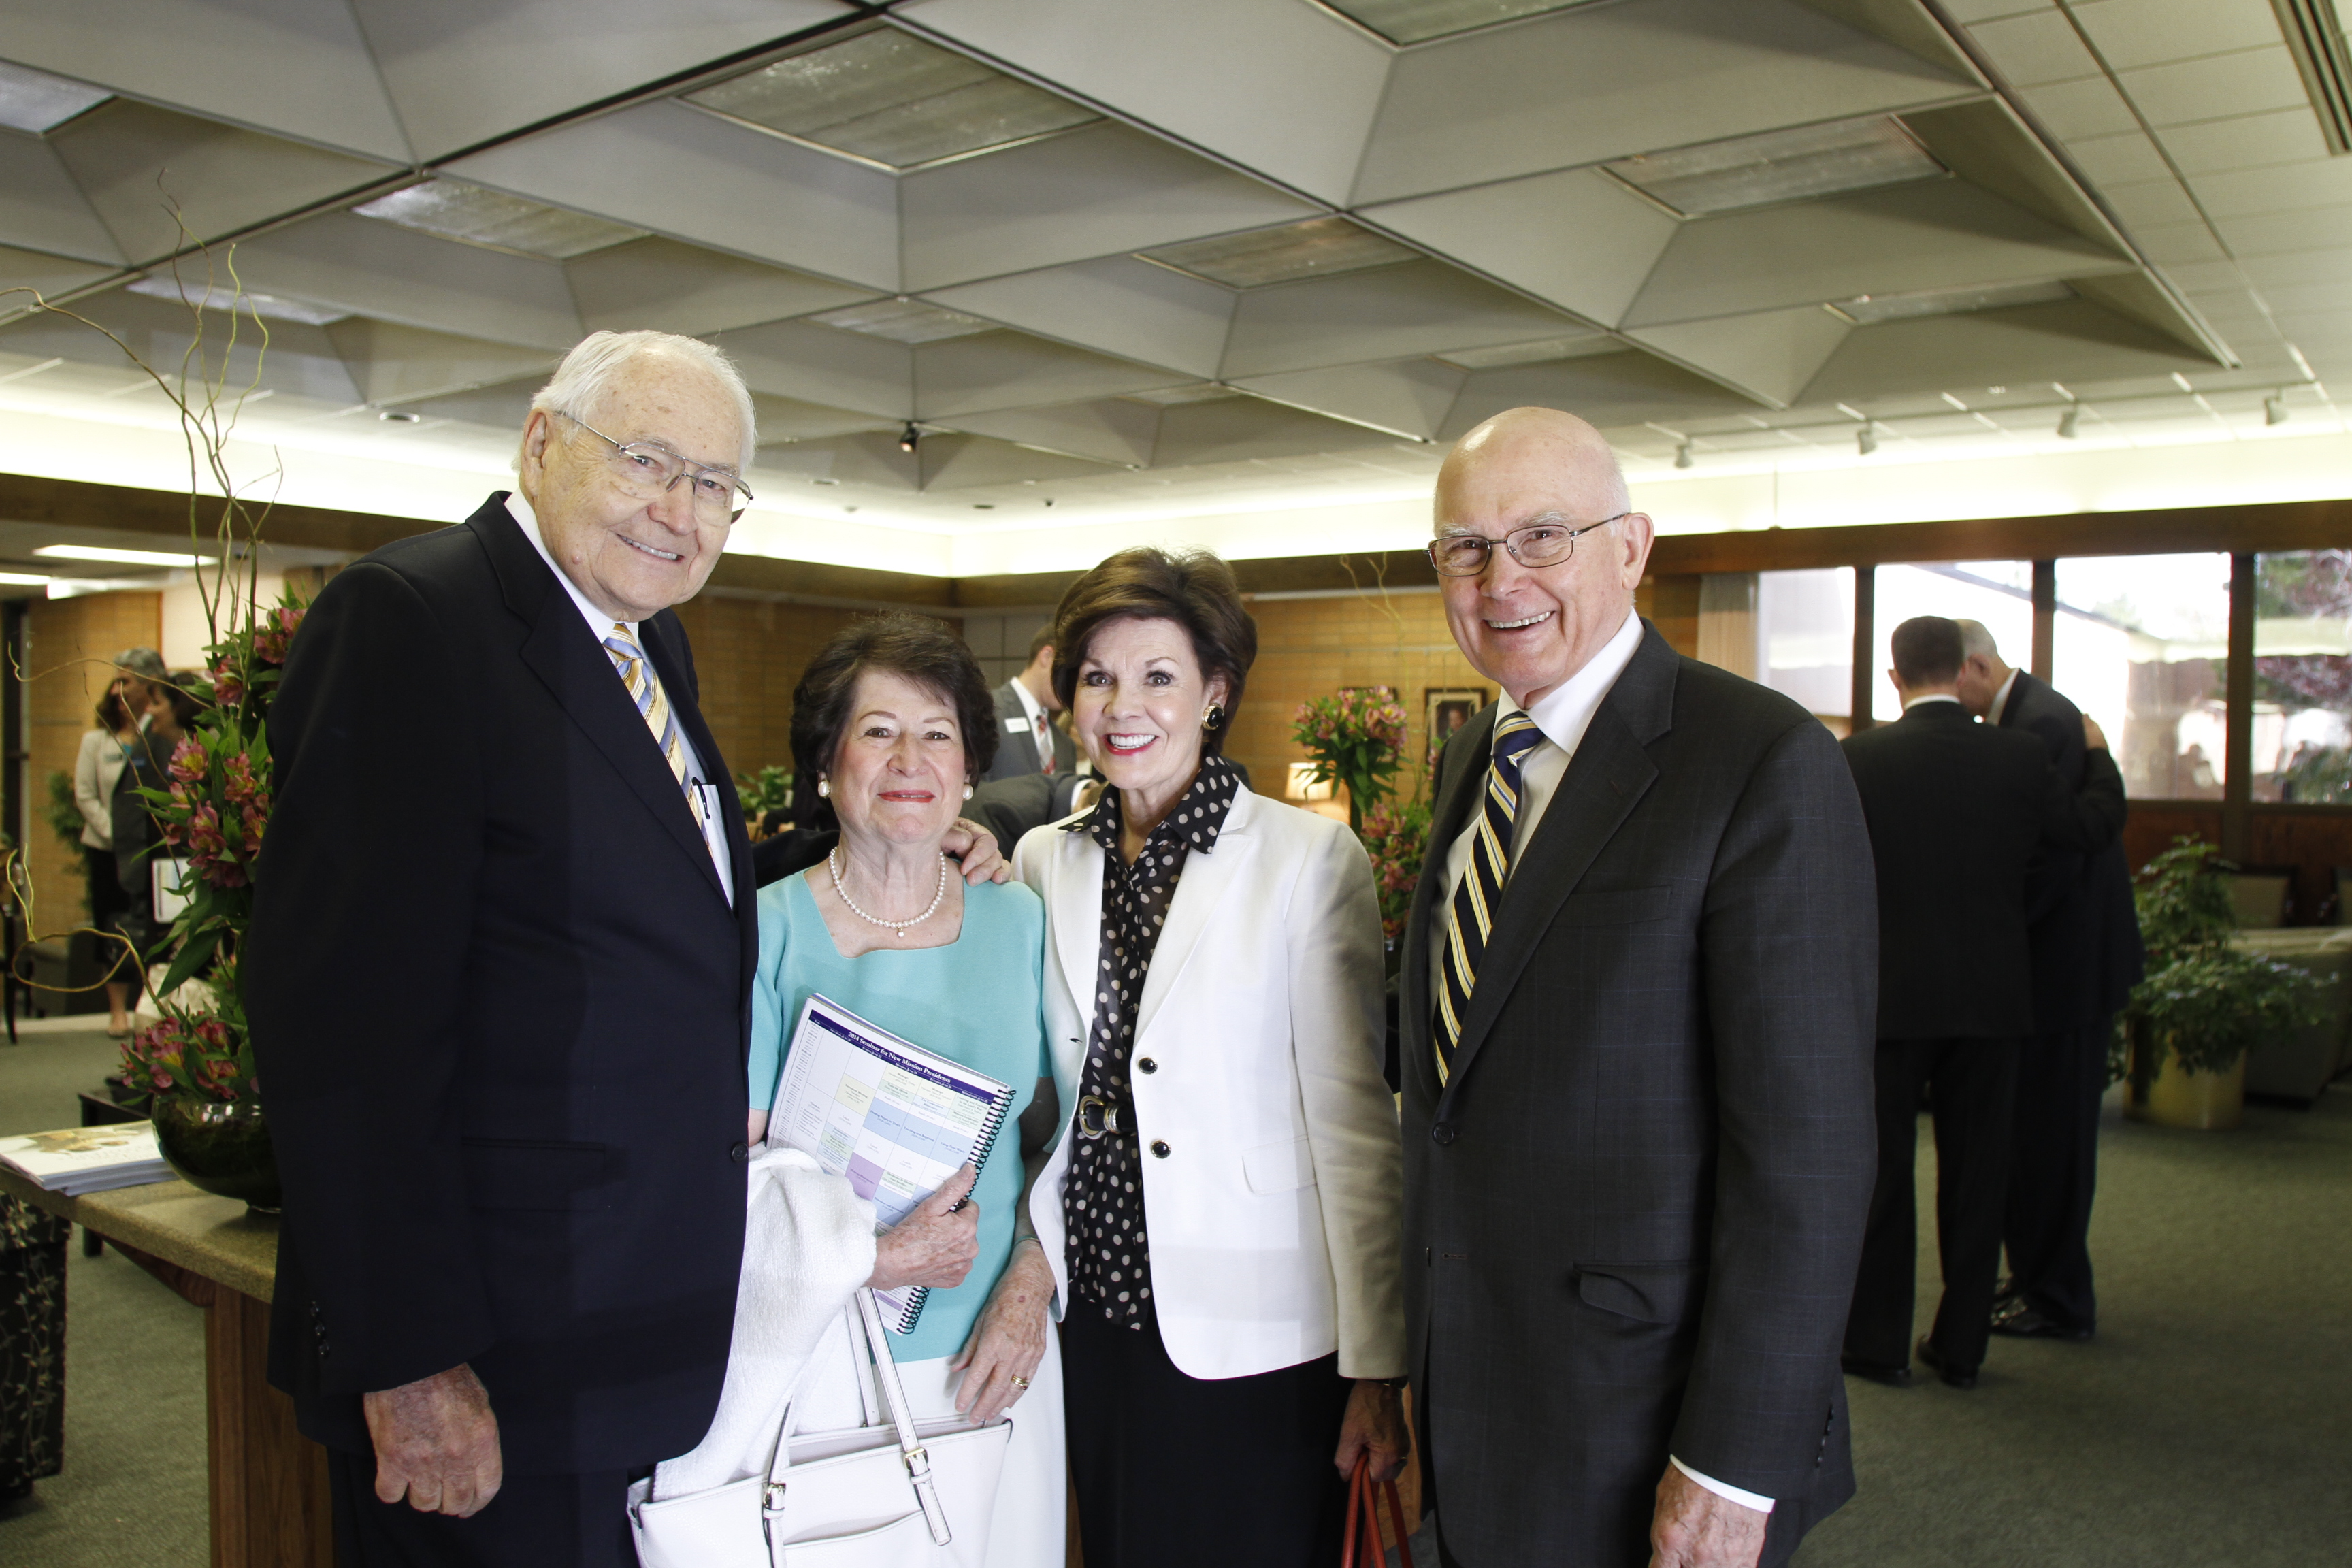 Elder L. Tom Perry, Sister Barbara Perry, Sister Kristen Oaks and Elder Dallin H. Oaks pose for a photo during the 2014 Seminar for New Mission Presidents at the Missionary Training Center in Provo, Utah.